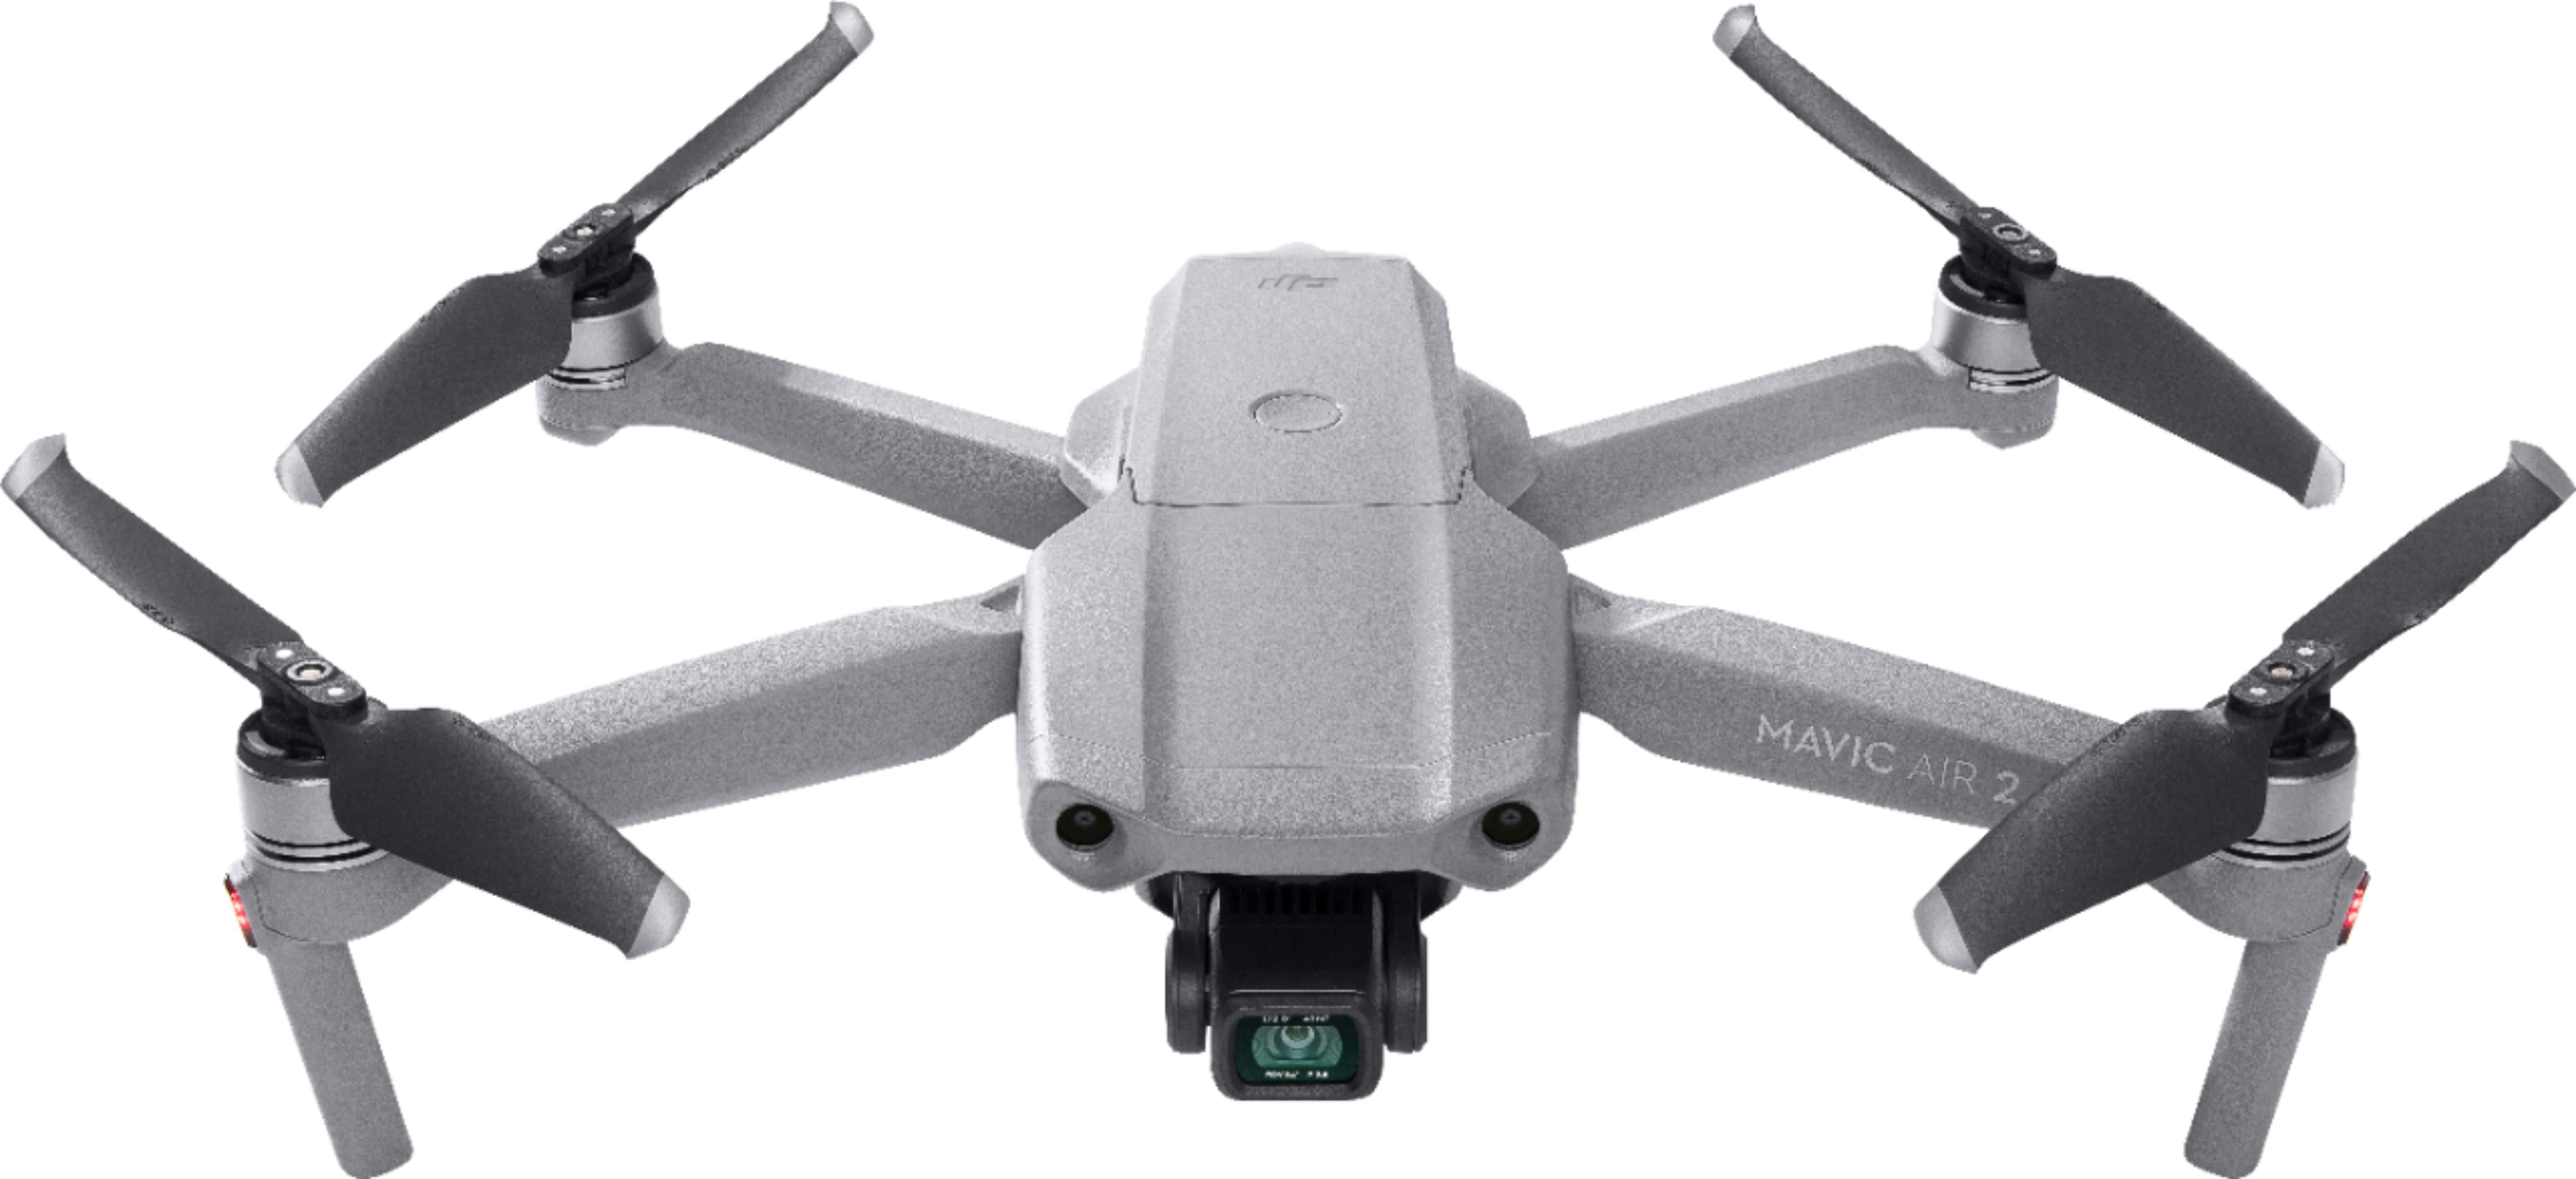 DJI - Mavic Air 2 Drone with Remote Controller - Black - Rite Gadgets